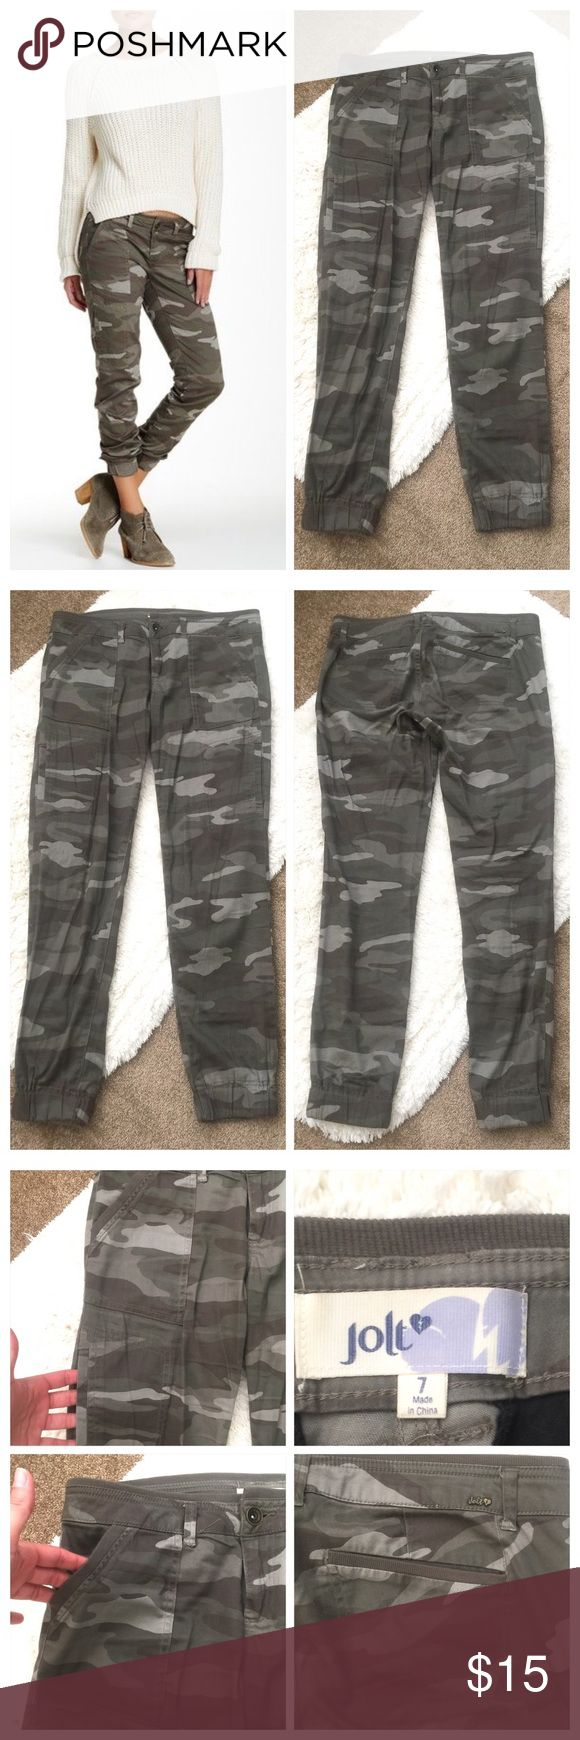 """🌼Jolt Camouflage Jogger Jeggings🌼 🌼Jolt Camouflage Jogger Jeggings🌼 Junior size 7 which is a small. Belt hoop and functional pockets as shown in picture. These have a nice stretch and are very soft. Measurements are; waist laying flat 16"""", inseam 29"""" and front rise 9"""". In great condition! All my items are from a smoke free environment. Jolt Pants Track Pants & Joggers"""